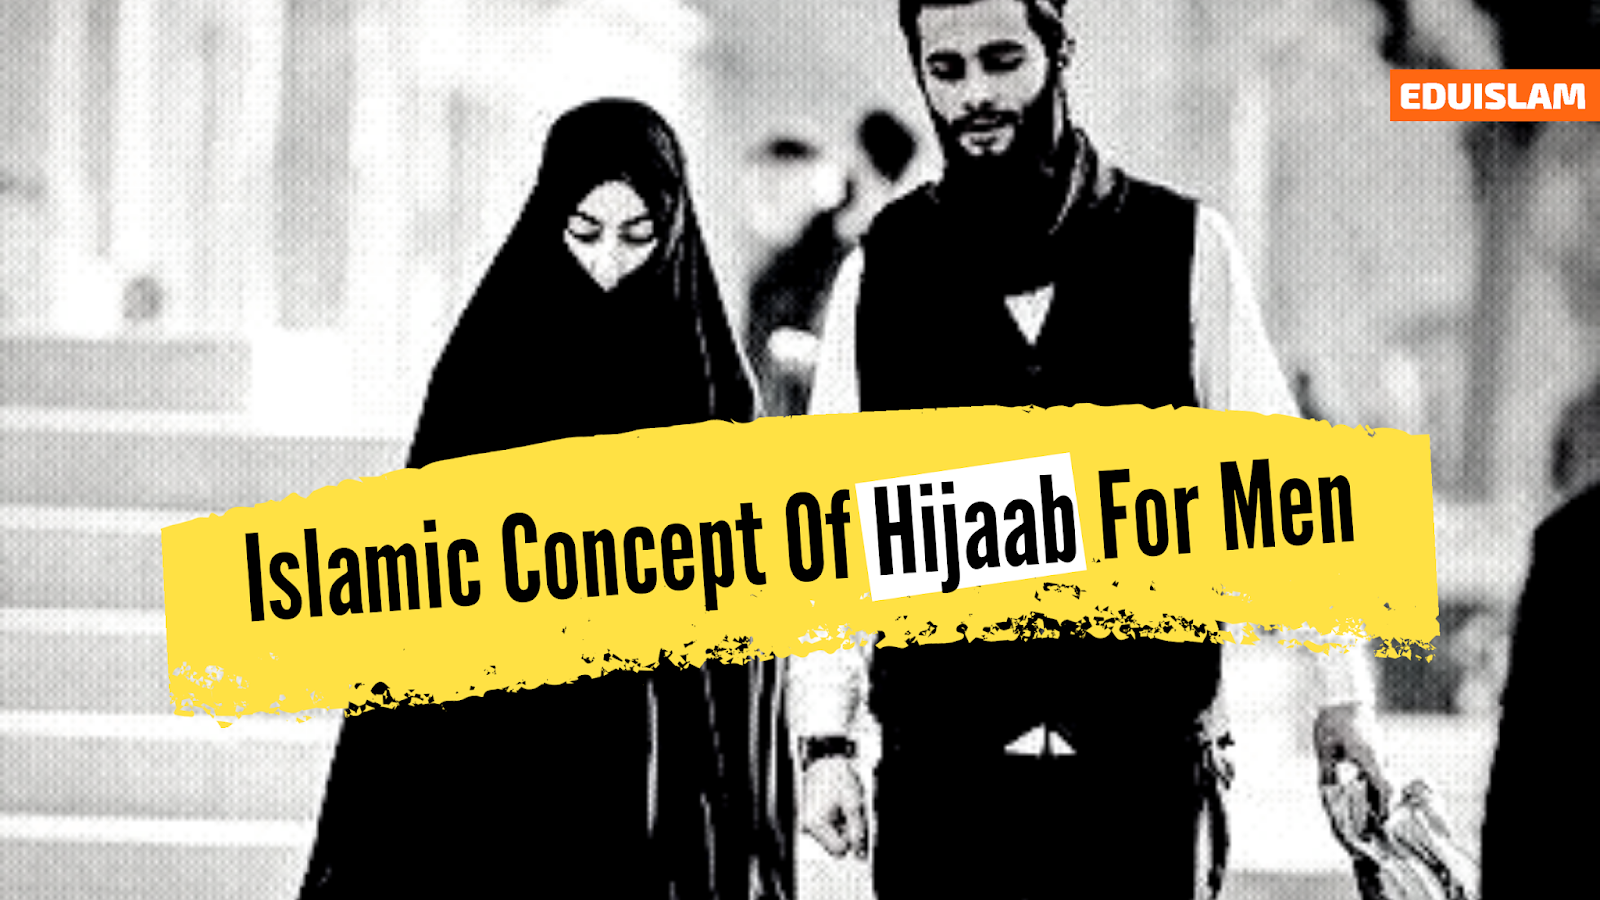 Islamic Concept Of Hijaab For Men, Hijab For Men